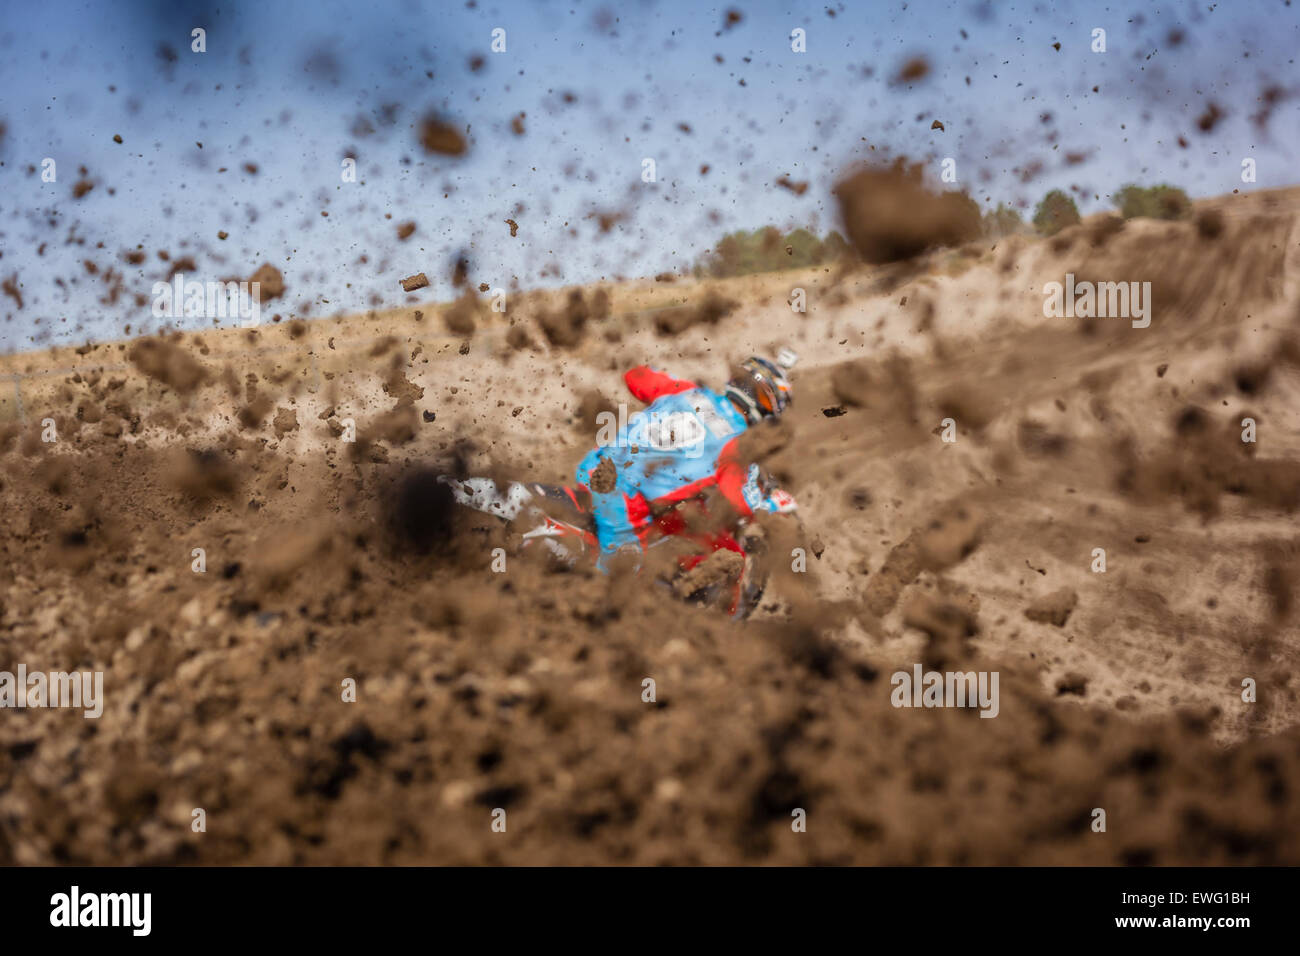 Motorbike Rider With Flying Dirt Dirt Bike Motorcycle Rider